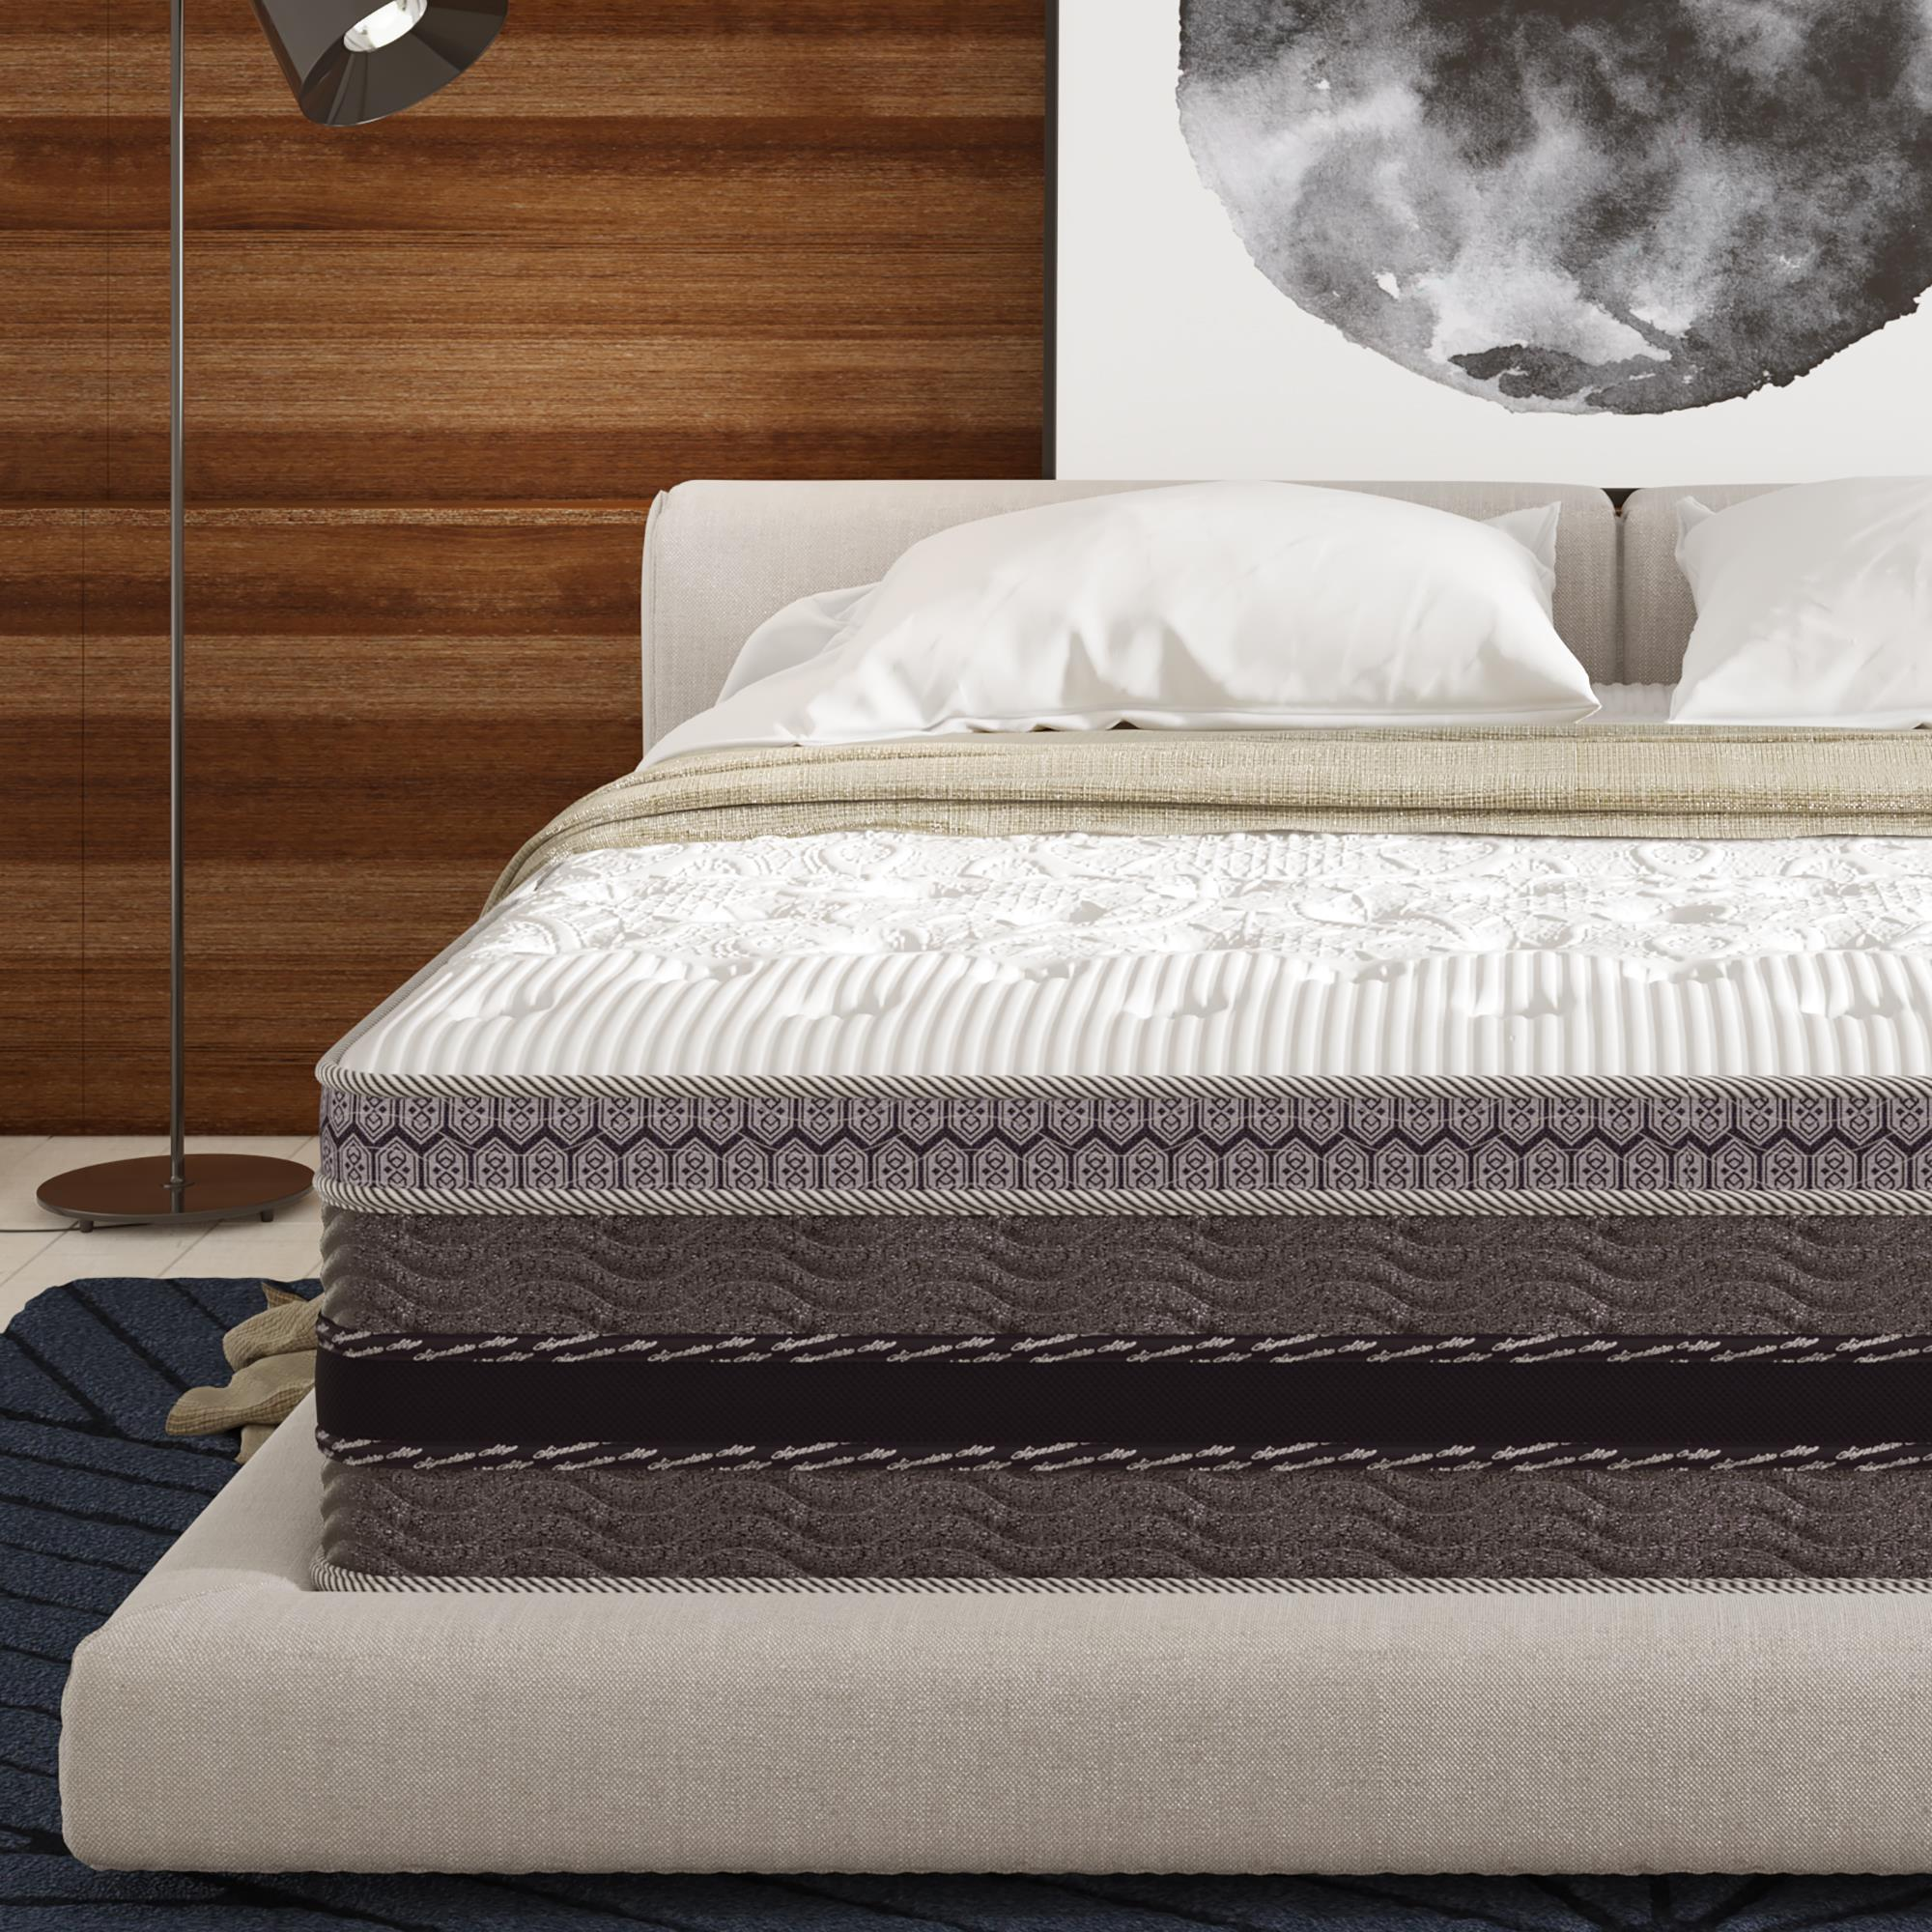 Signature Sleep Justice 14 inch Independently Encased Coil and Gel Memory Foam Mattress